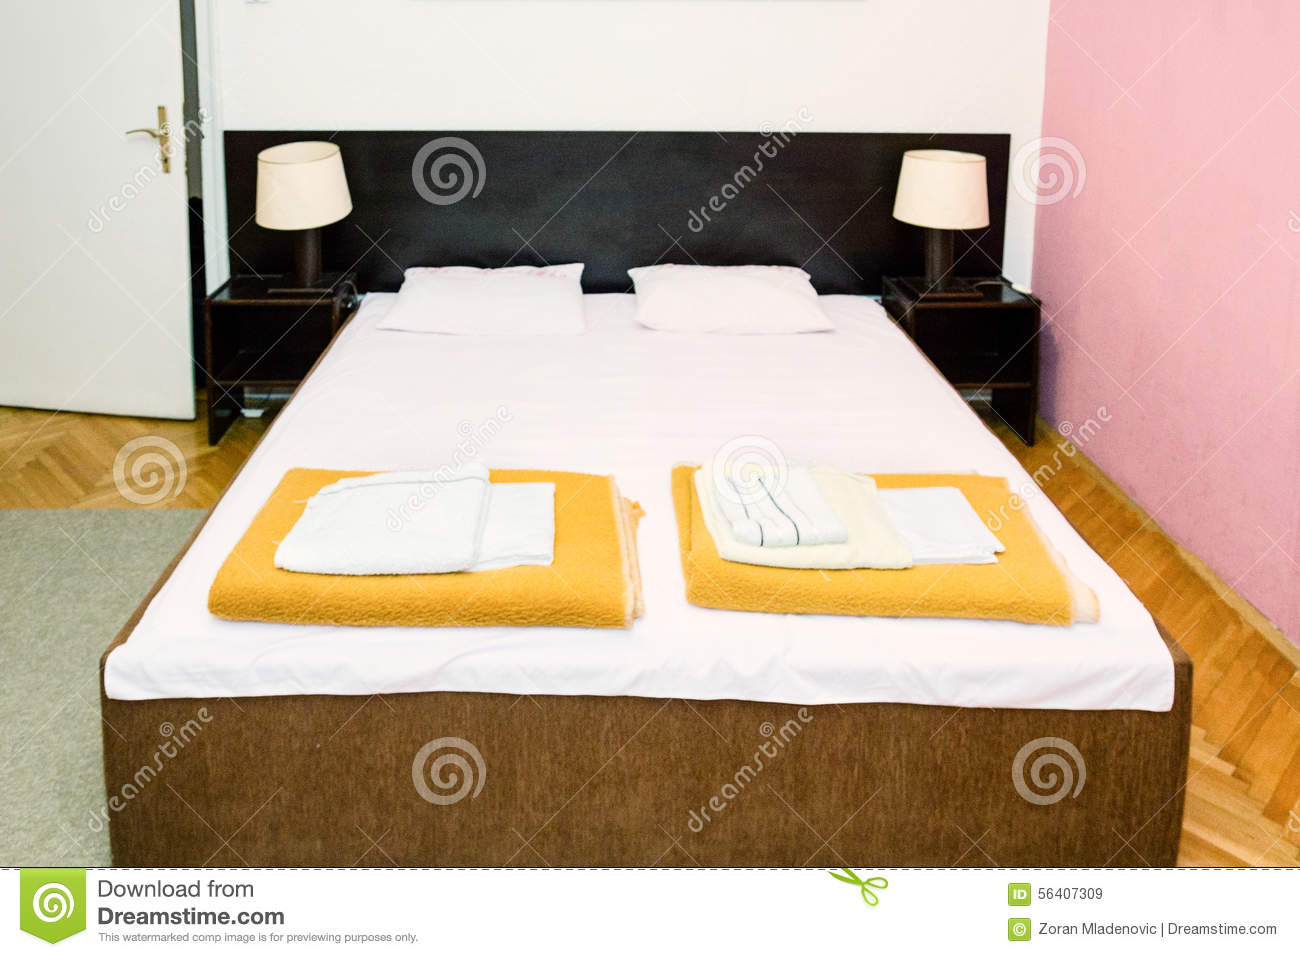 Retro bedroom interior double bed in vintage indoor room stock illustration image 56407309 - Wash white sheets keep fresh ...